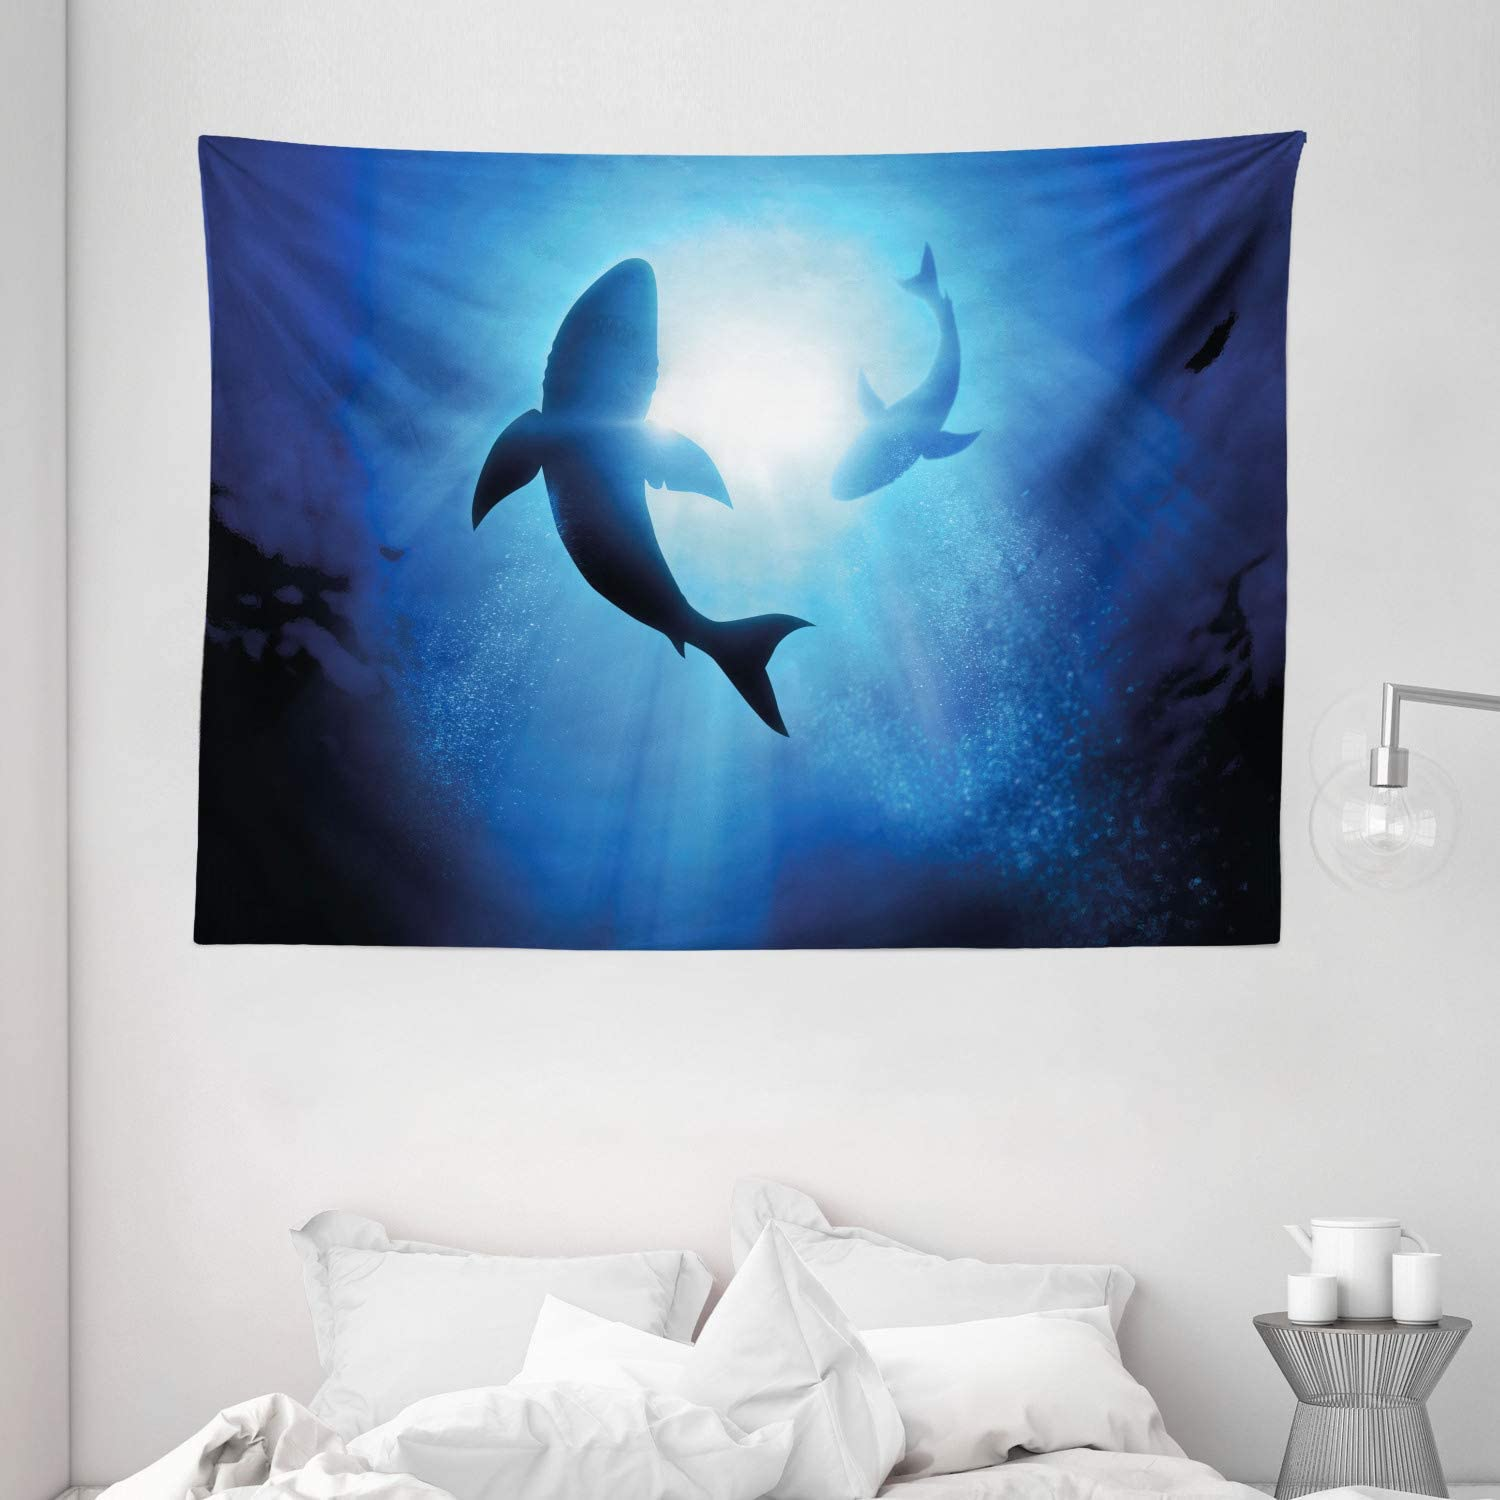 Ambesonne Shark Tapestry, Underwater World with Fish Silhouettes Circling in The Sea Surreal Ocean Life Print, Wall Hanging for Bedroom Living Room Dorm, 80 W X 60 L Inches, Royal Blue